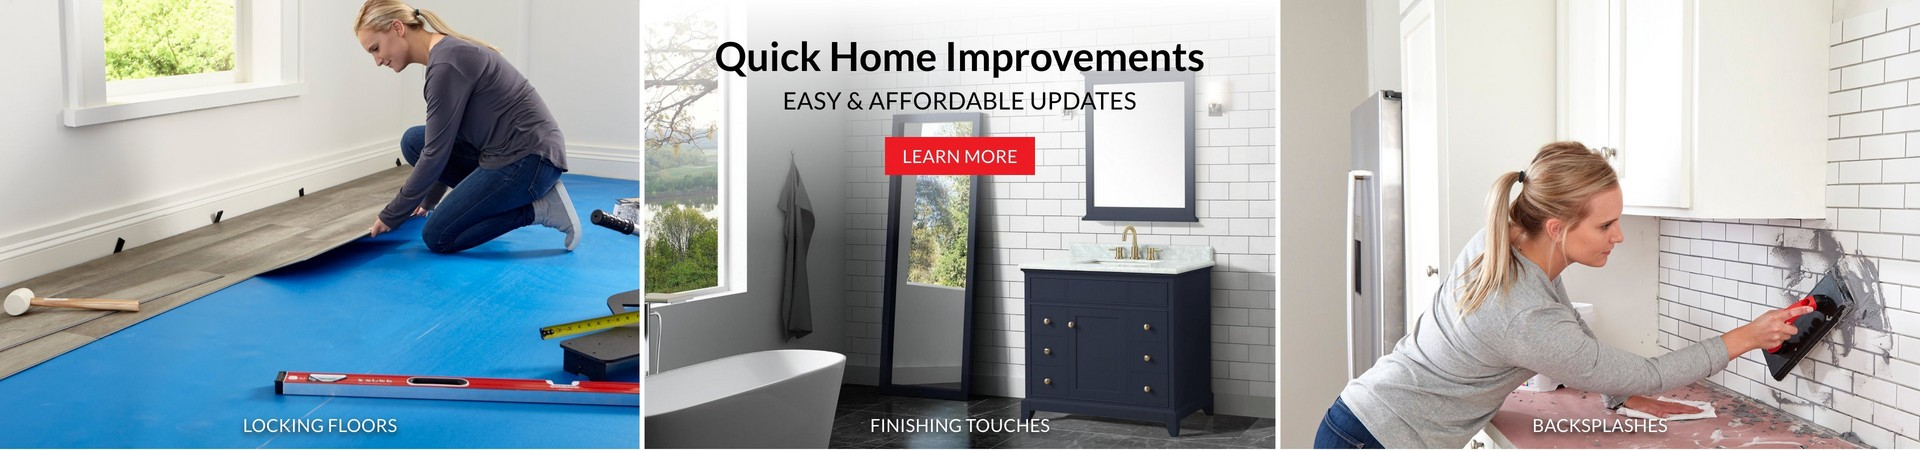 Quick Home Improvements